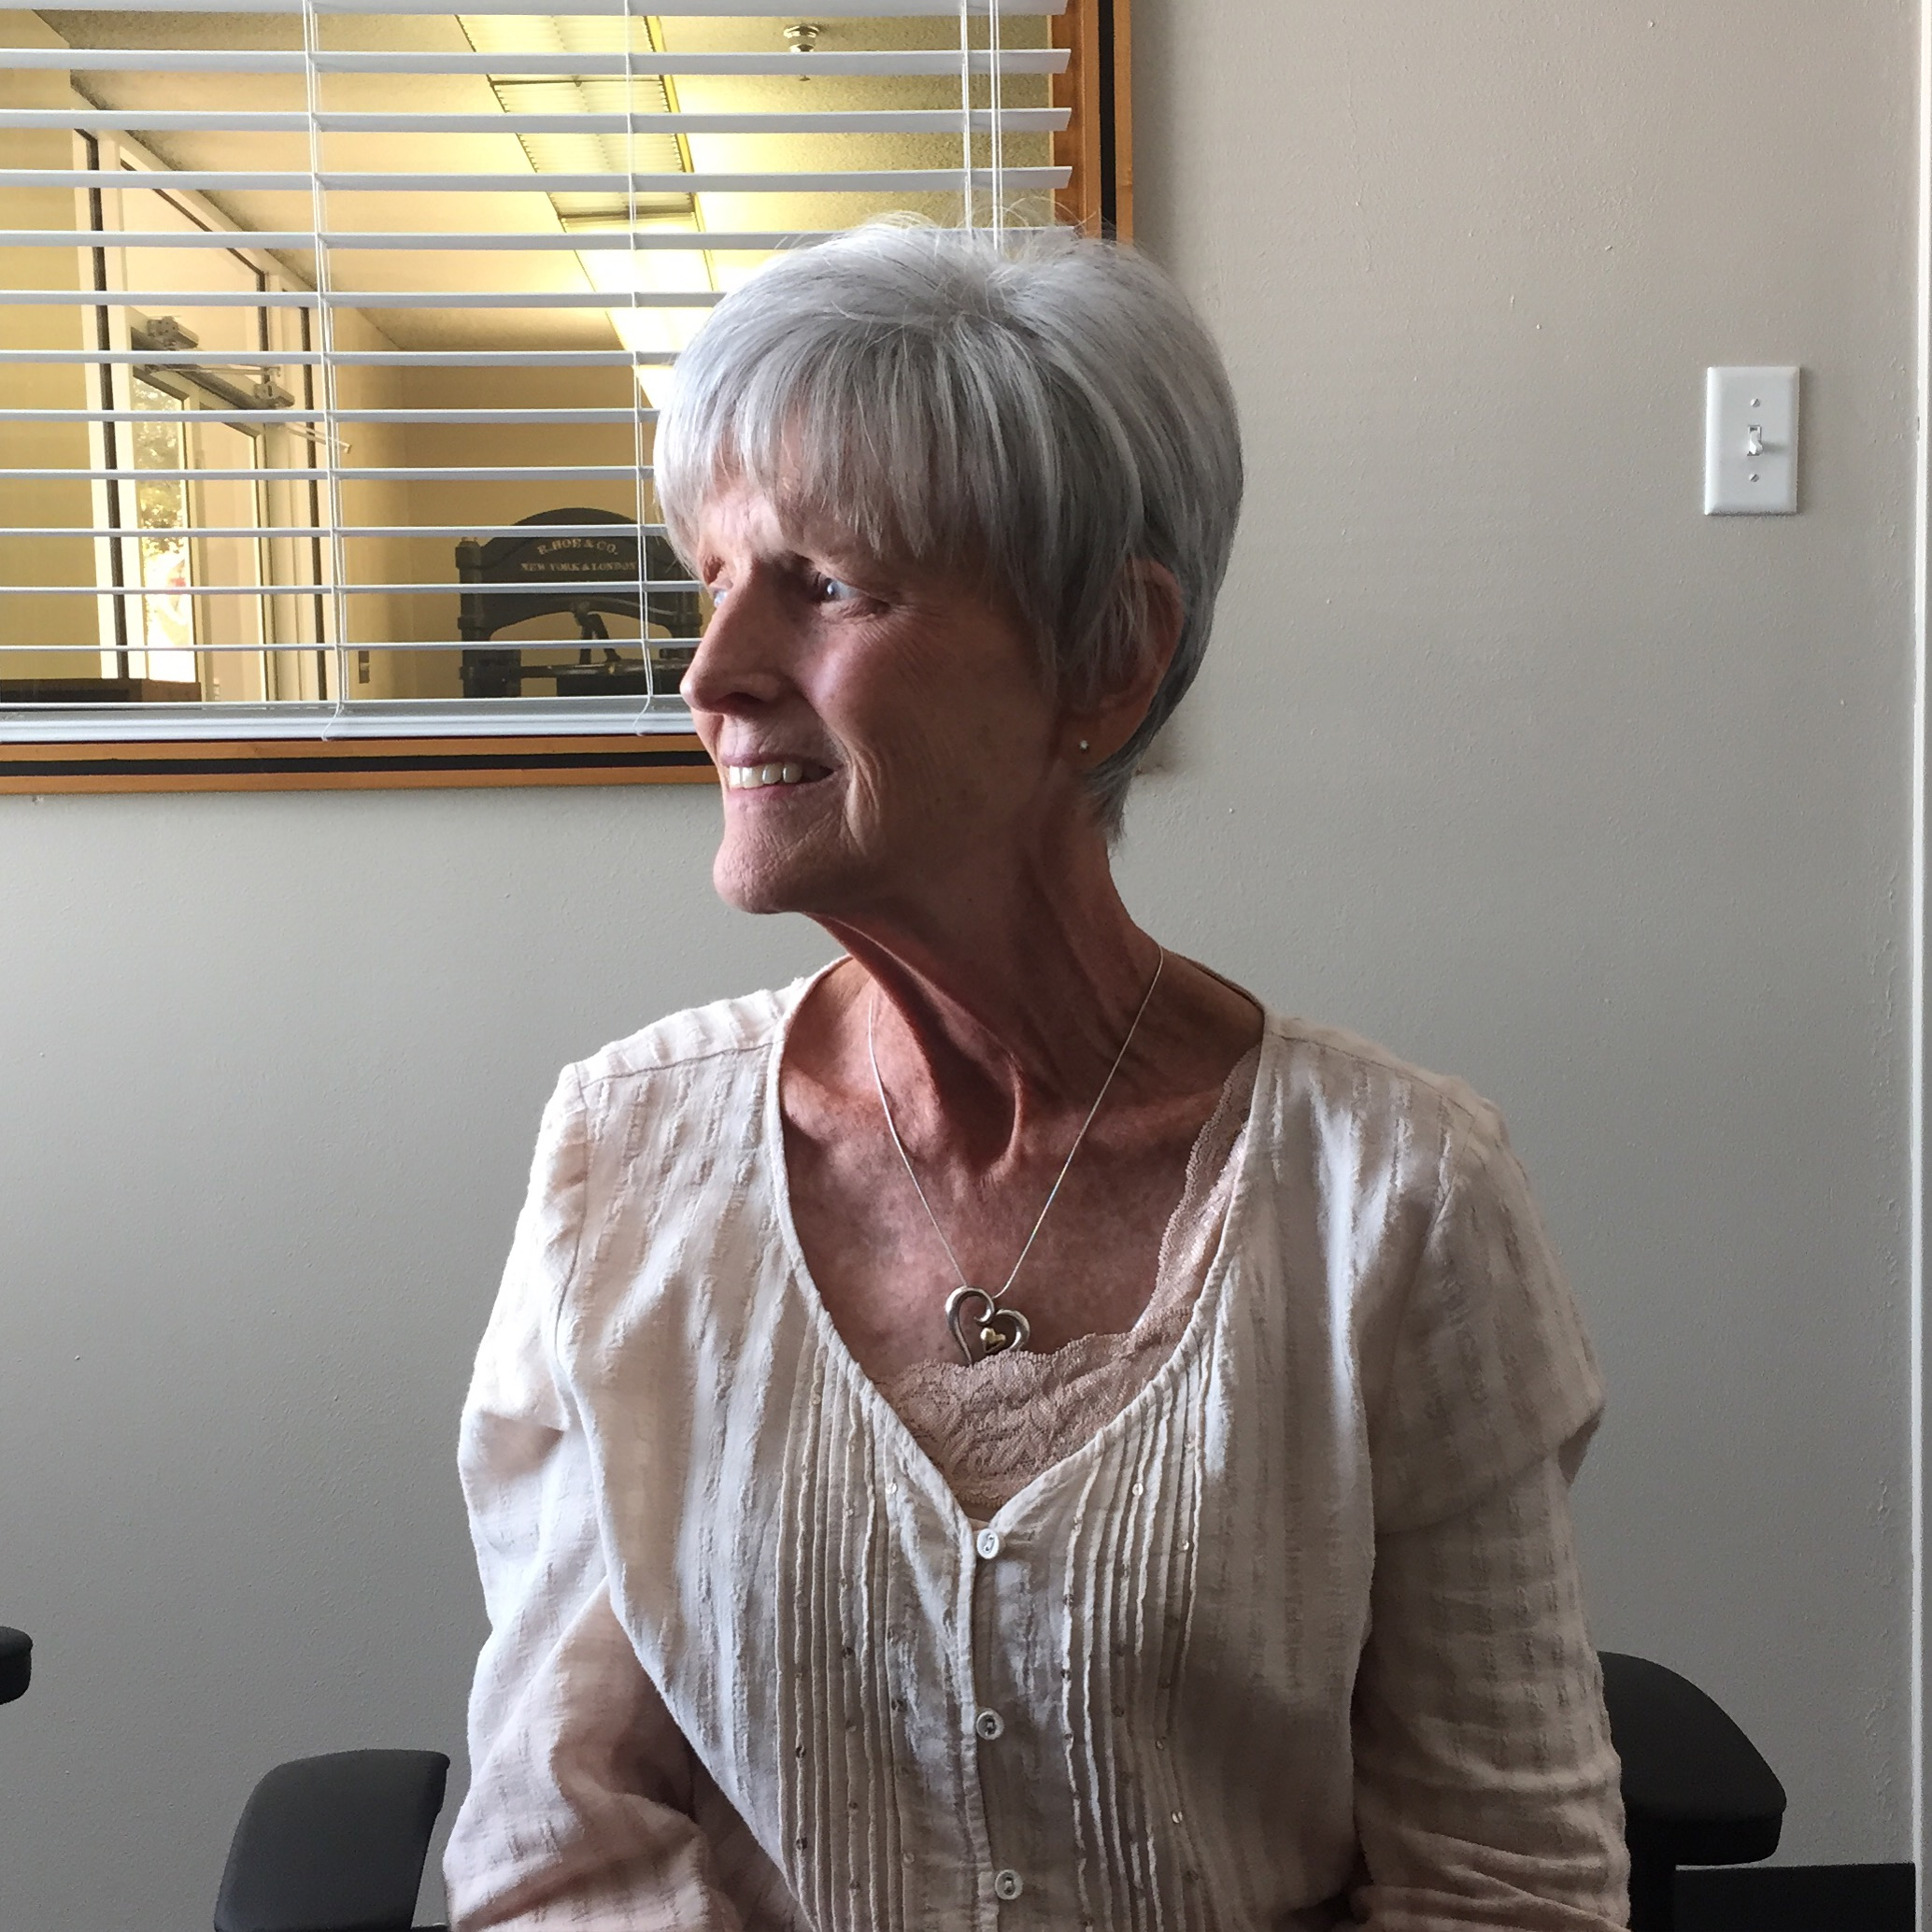 """Midland, TX. August, 2015. This is Patsy Childress. She was diagnosed with breast cancer in 1996, was """"cancer-free"""" for 9 years and then re diagnosed. She currently gets chemo about every week. """"I can't change what is. The doctors and nurses can prescribe and try to make a difference. But if it doesn't, that's what is. You're scared just because you don't know what to expect. I can usually deal with just about anything as long as I know what to expect. I think the scary part is just realizing you're not in control of the situation. Whatever choice you make has no bearing on anything. It just will be what it is."""" Childress died in December of 2015.  #breastcancer    #cancer    #hope    #faith  #SnapshotLives"""